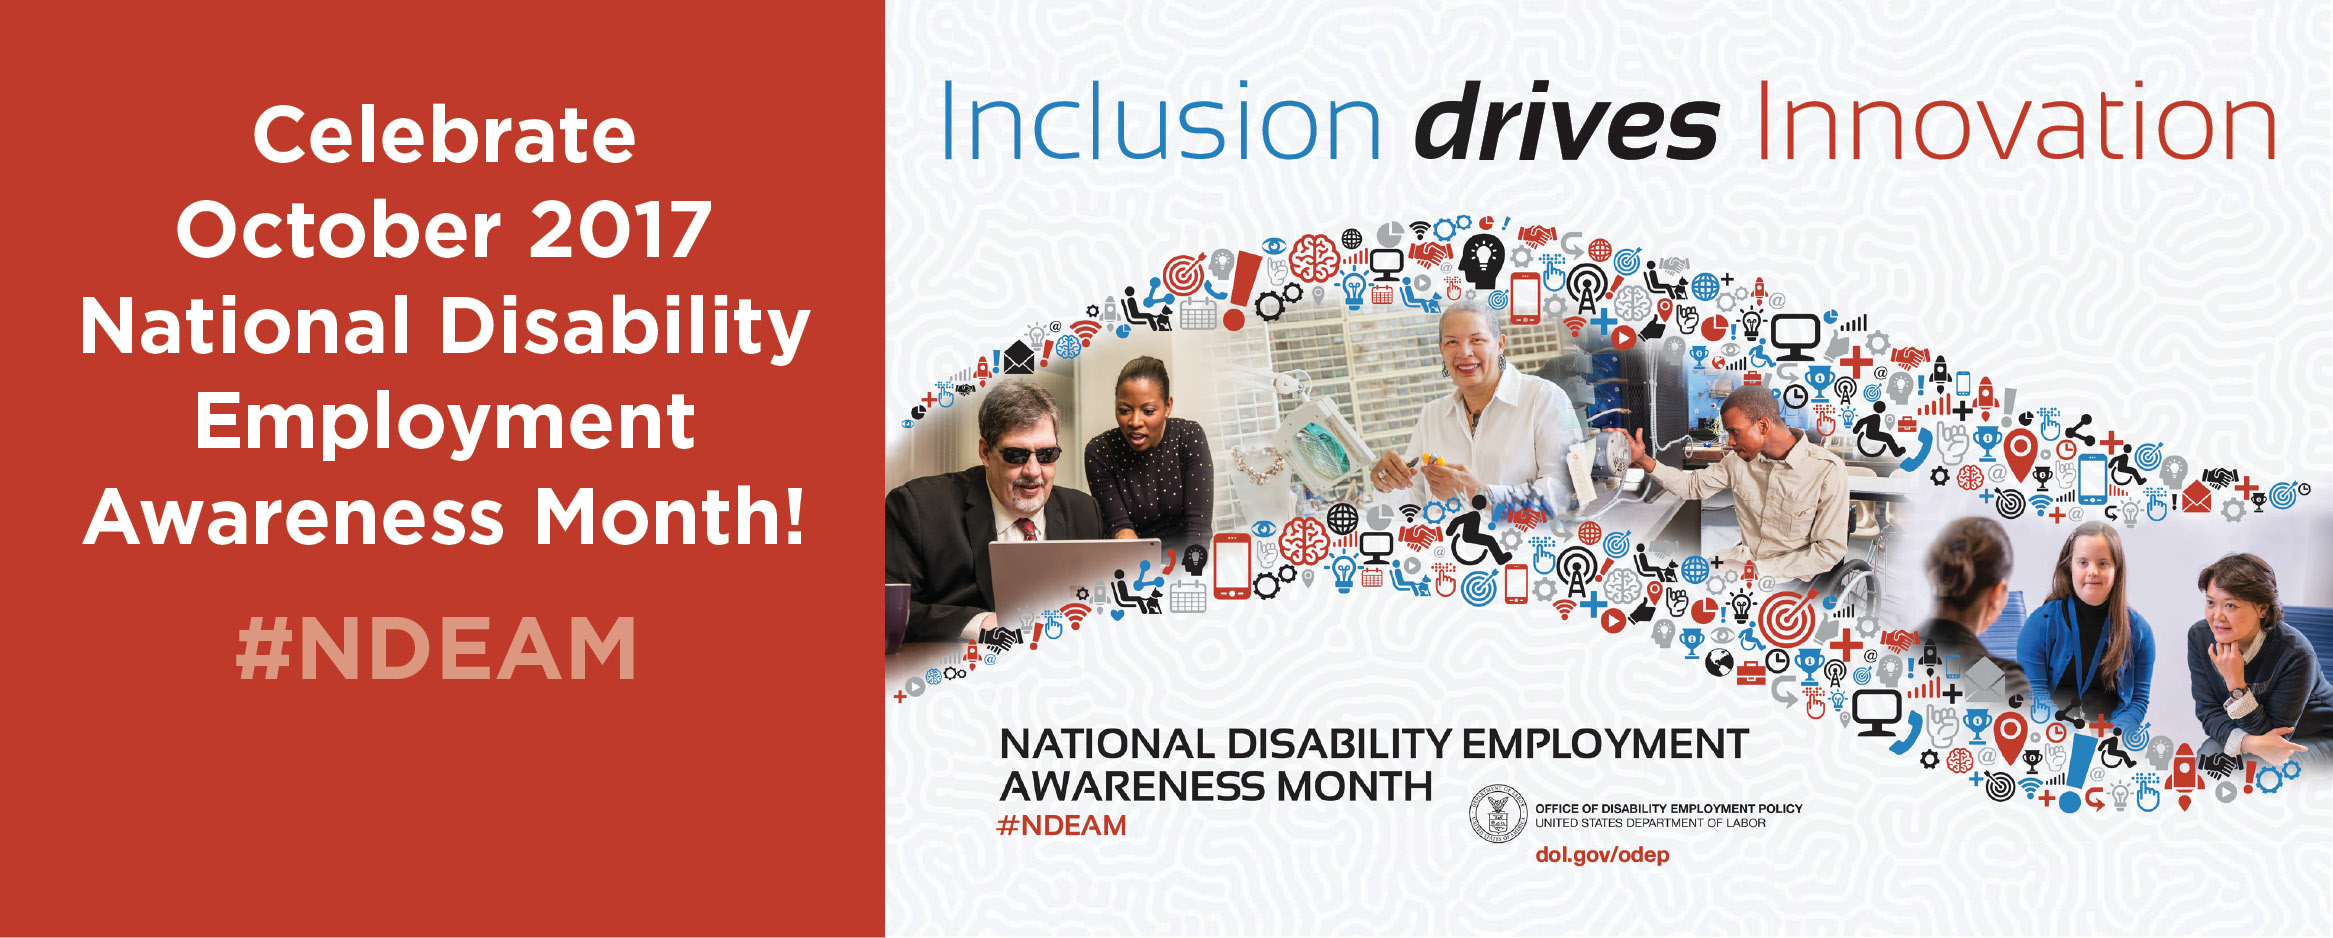 Celebrate National Disability Employment Awareness Month October 2017, #NDEAM